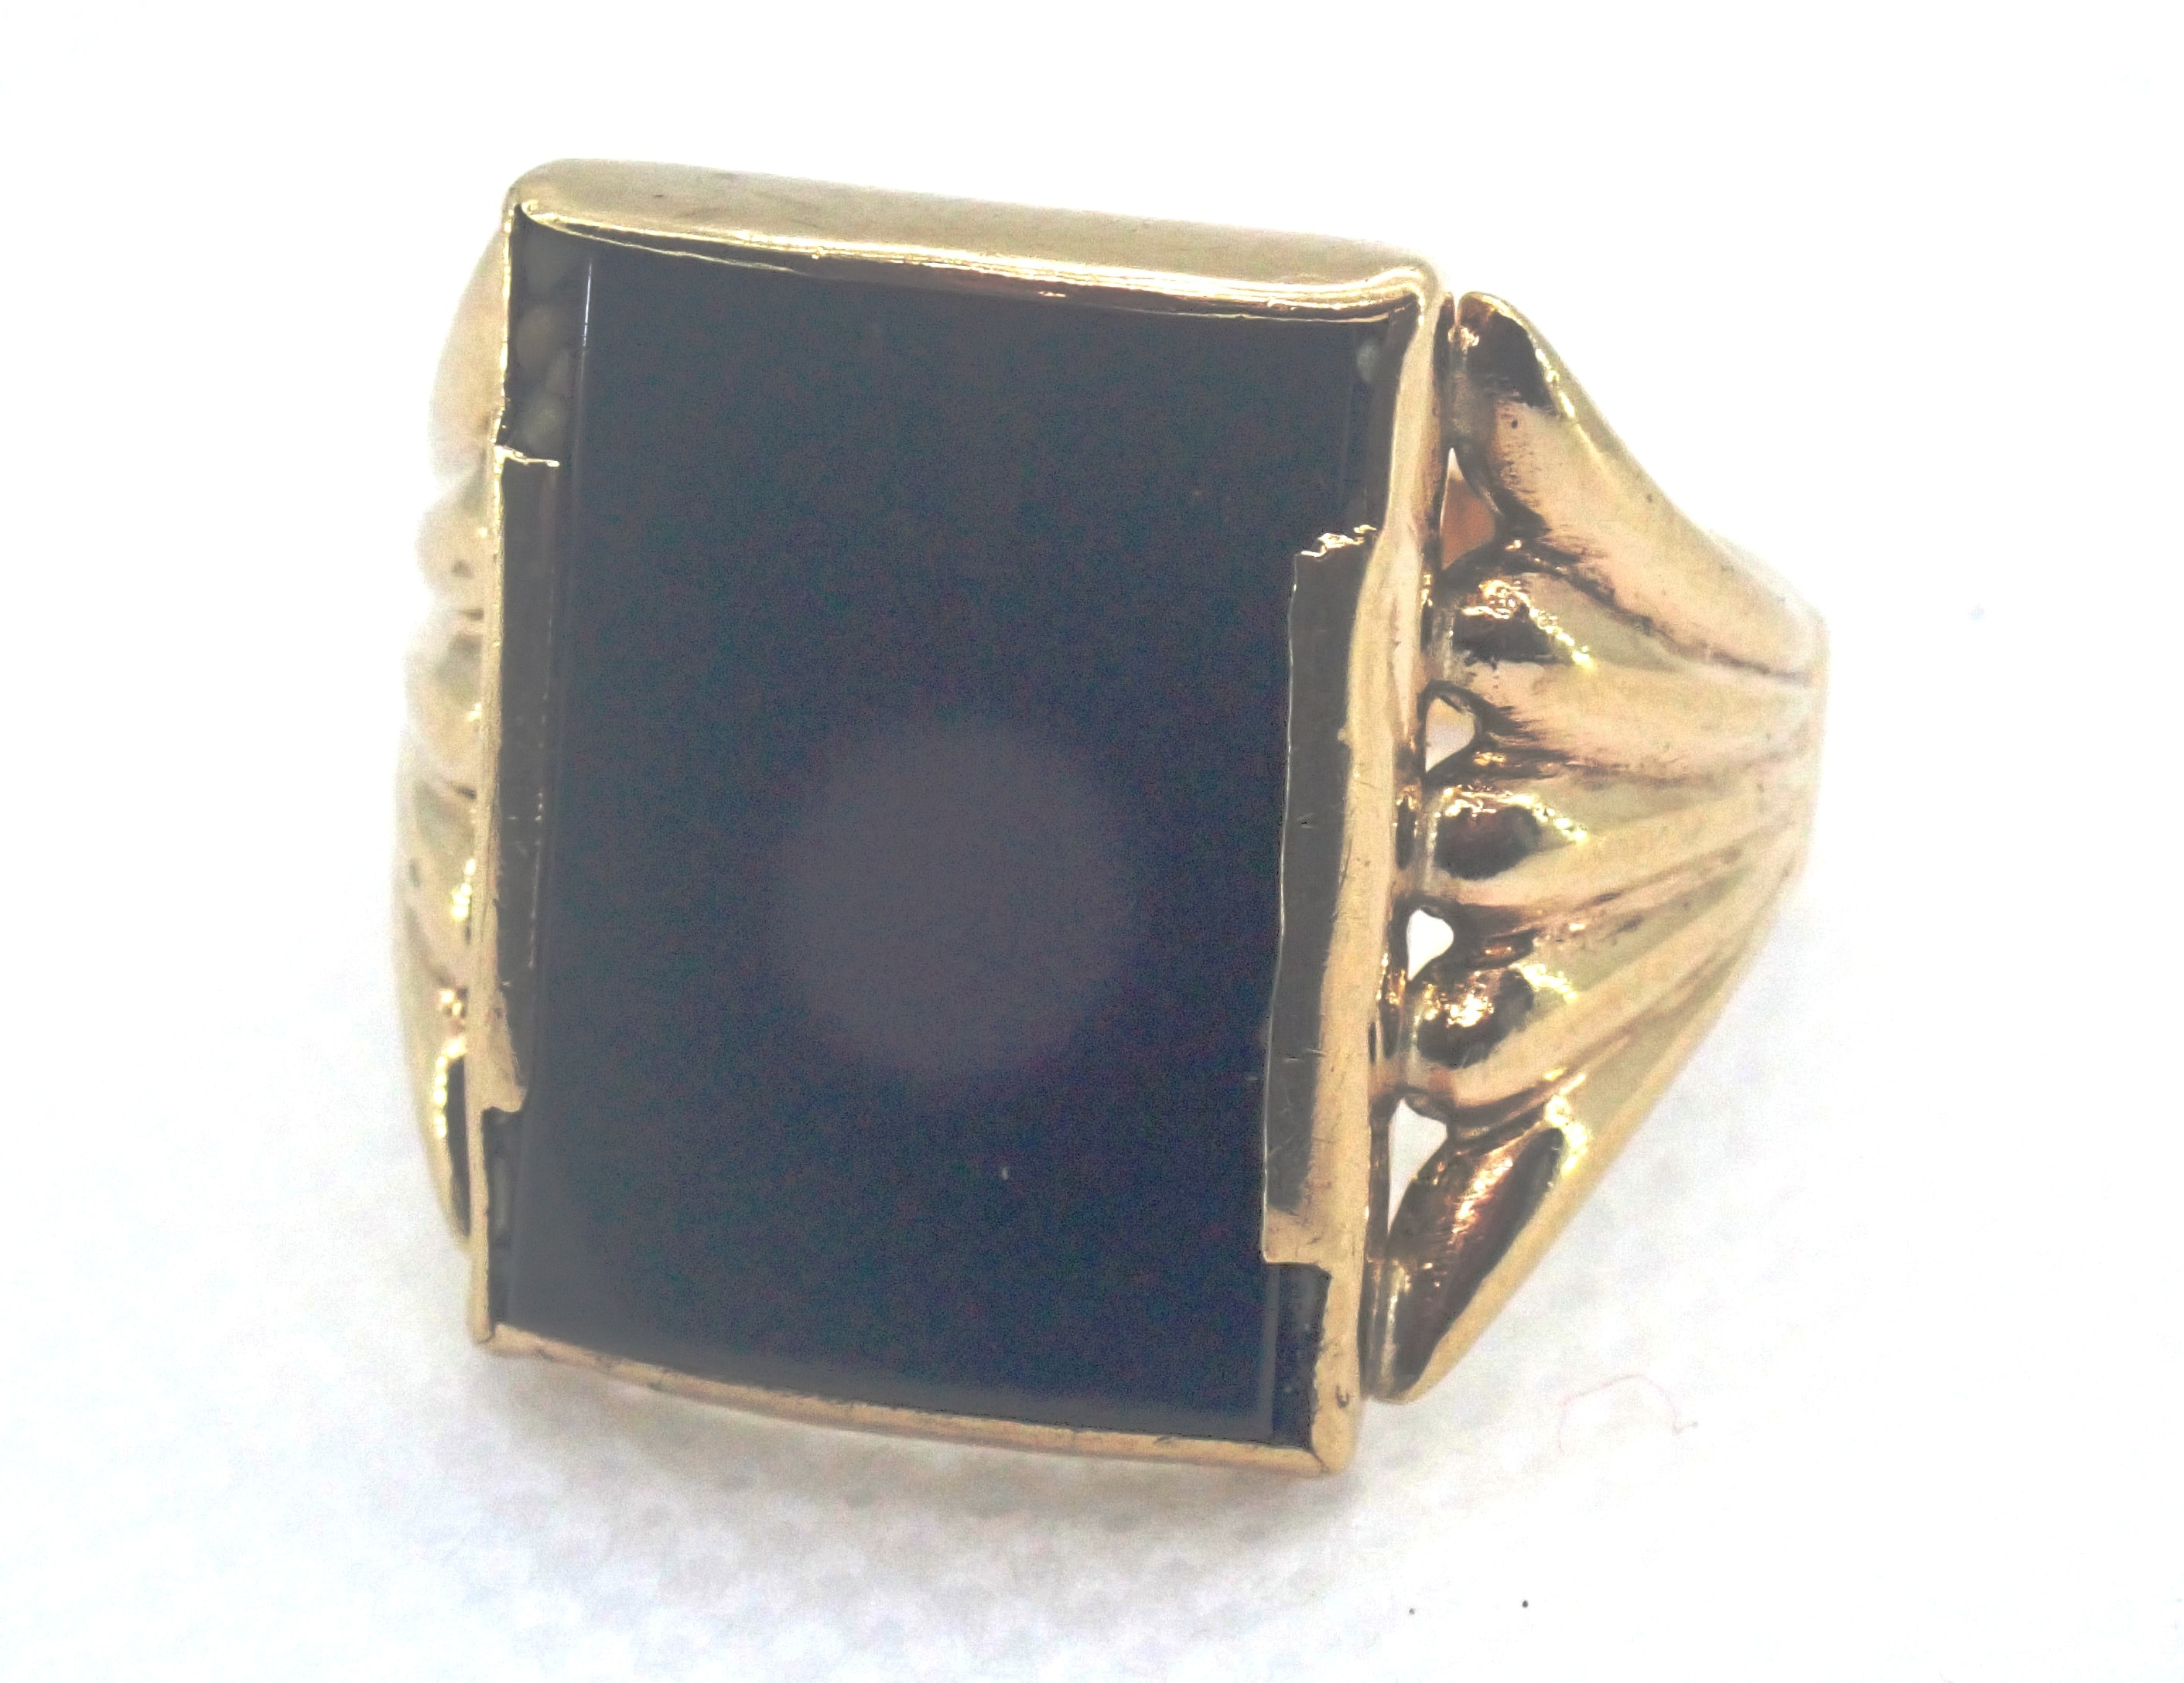 AZZ00693 - Beautiful!! Vintage Square Onyx 9 carat Gold Signet Ring - Size S1/2 - 5.5gms #011